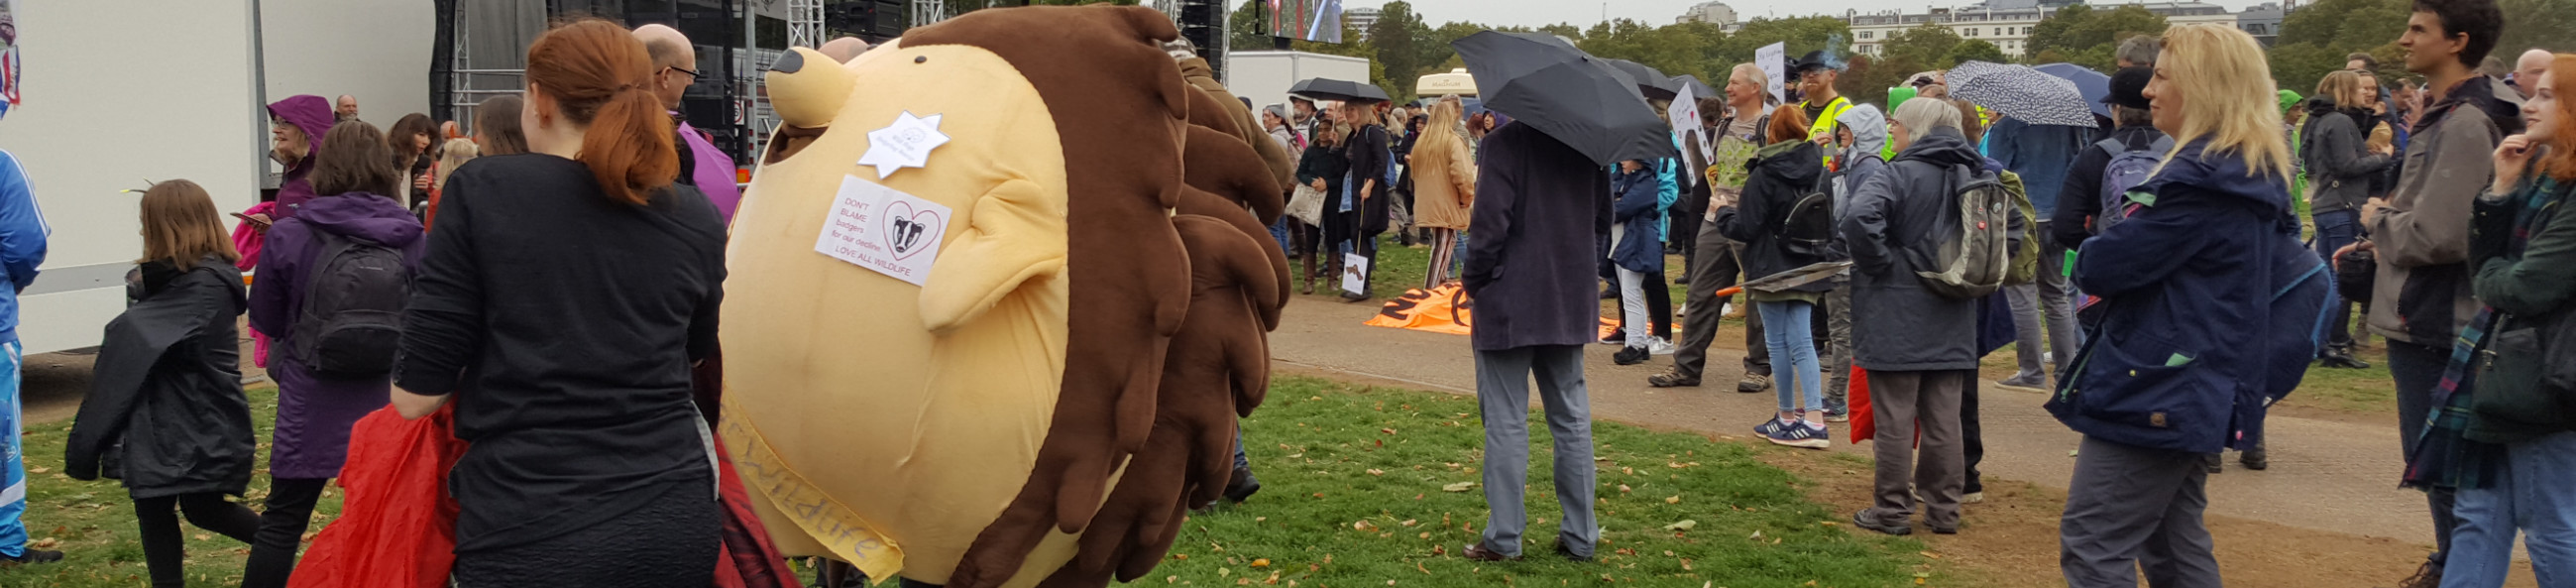 pic of wildlife enthusiasts gathering in Hyde Park in the rain, featuring Bud the giant hedgehog